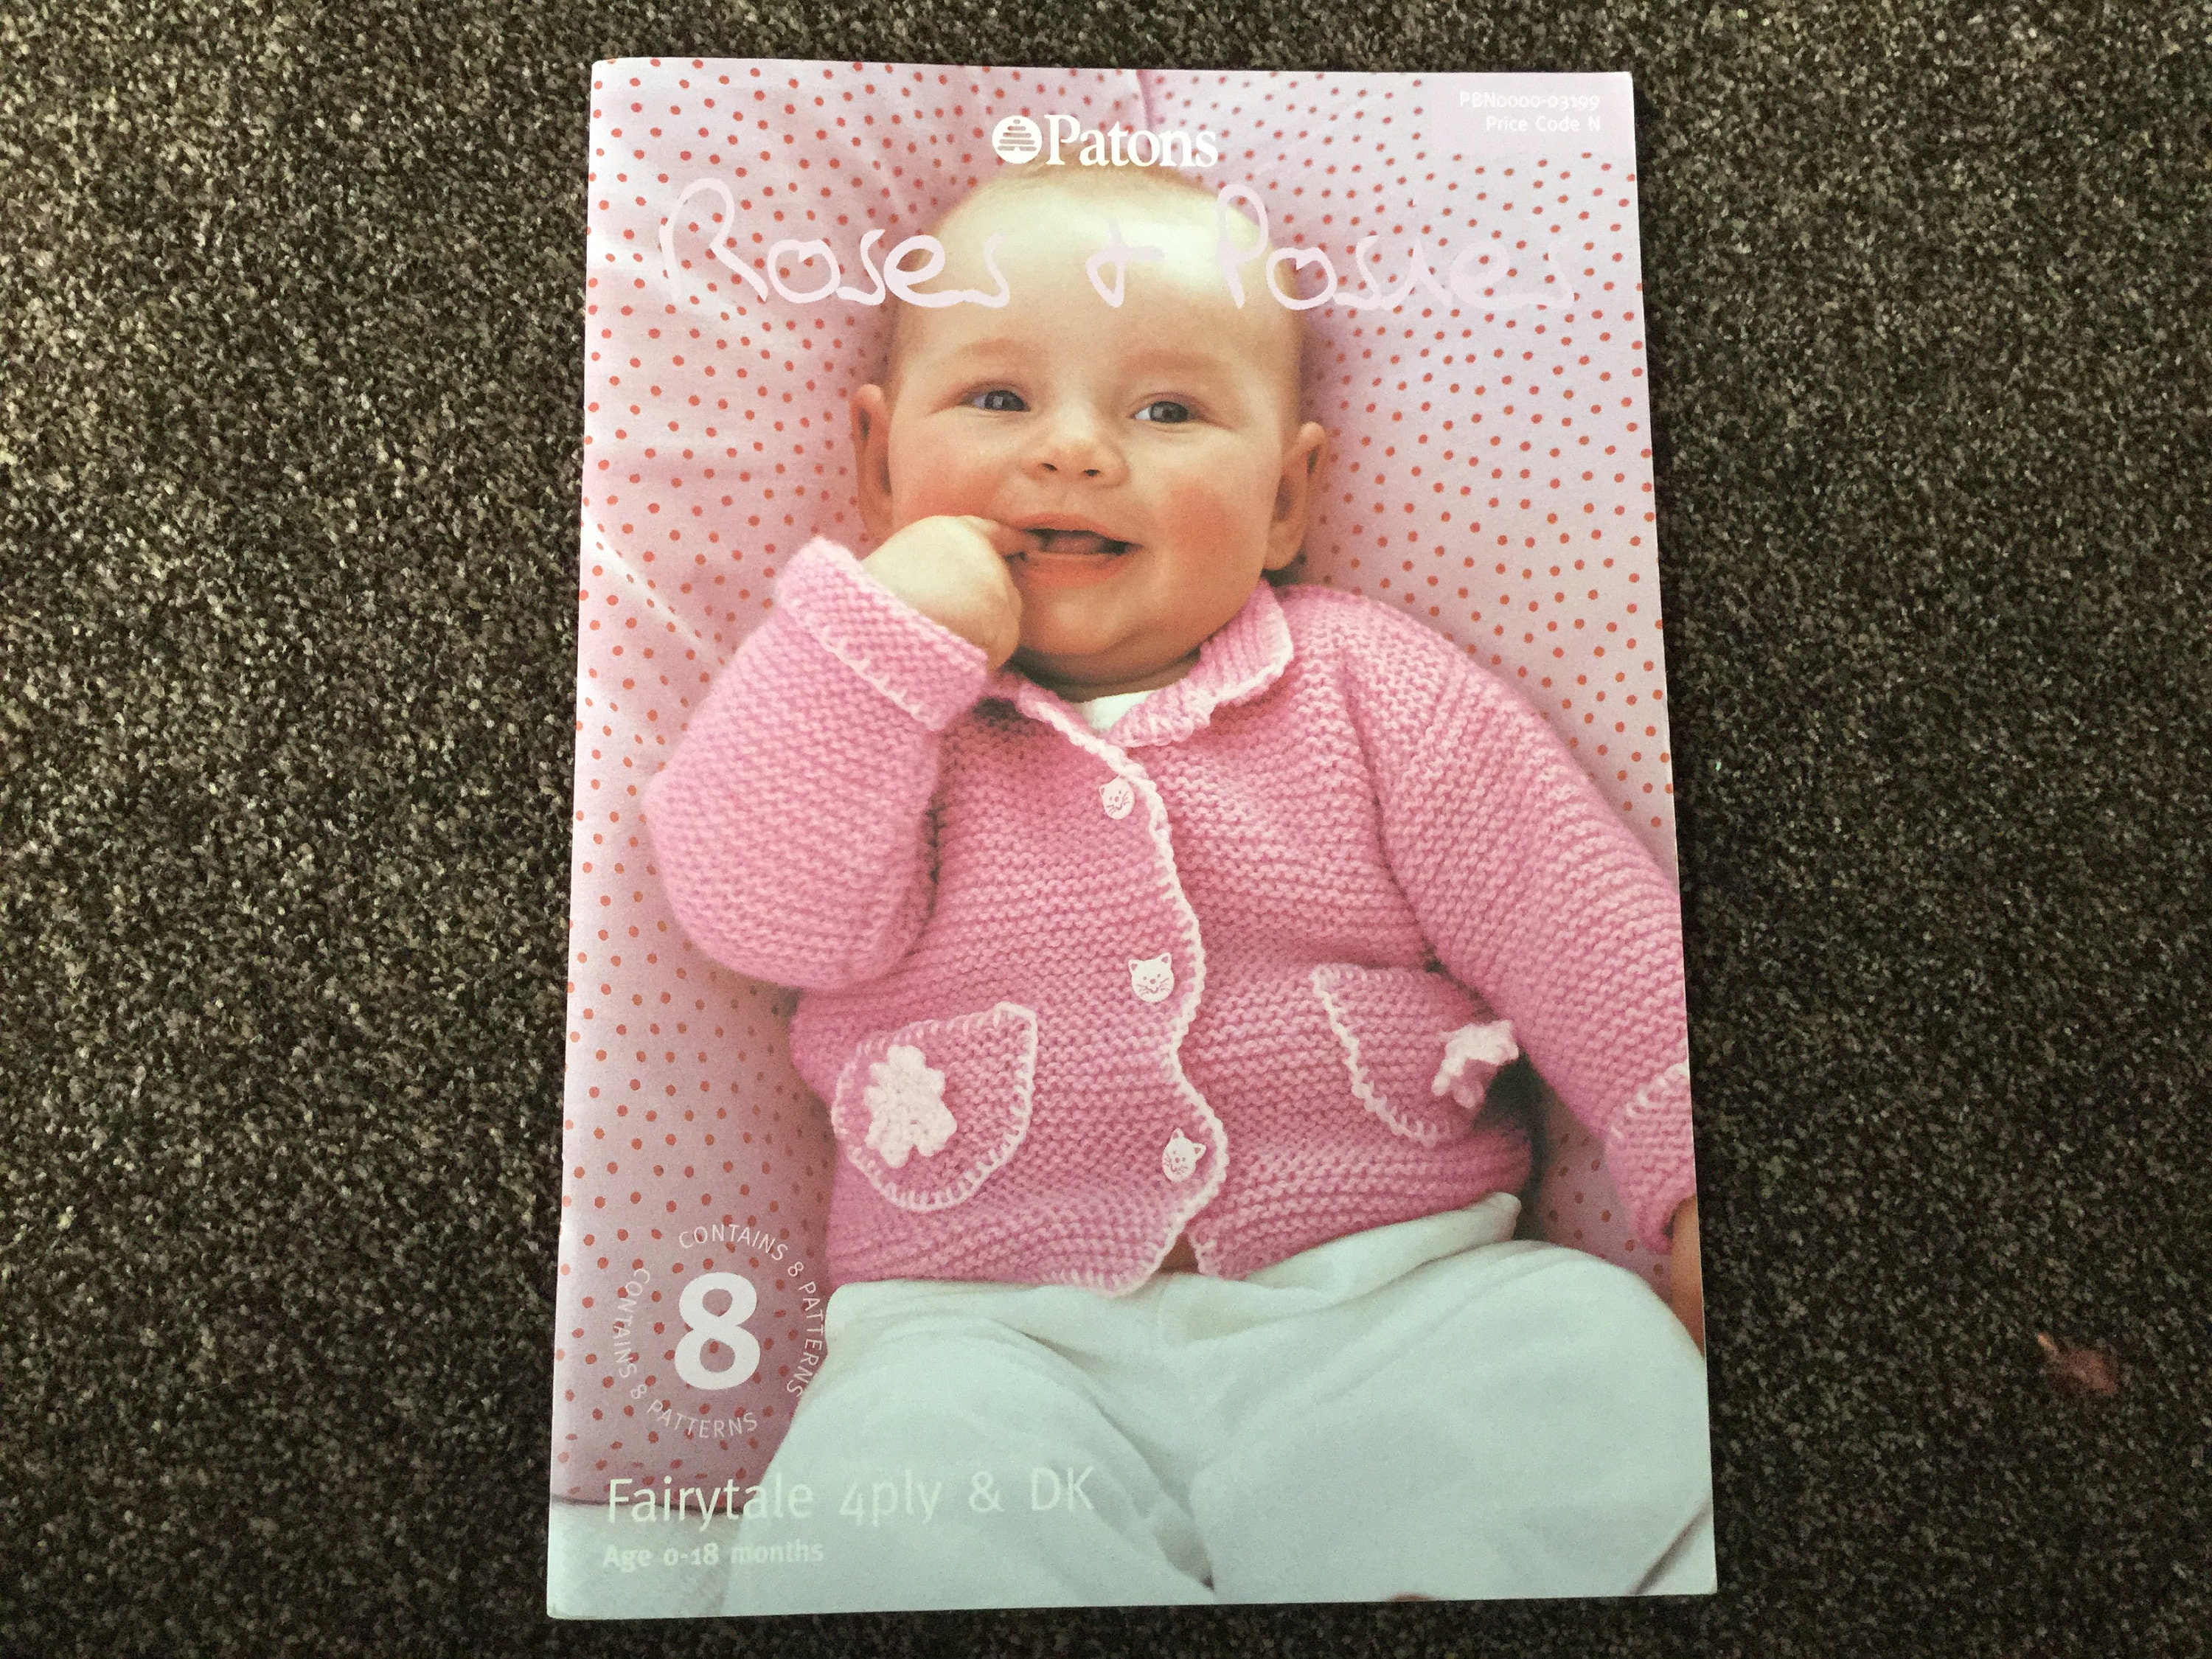 Baby Knitting Patterns Booklet Patons 4 Ply And Dk Yarn 0 18 Etsy